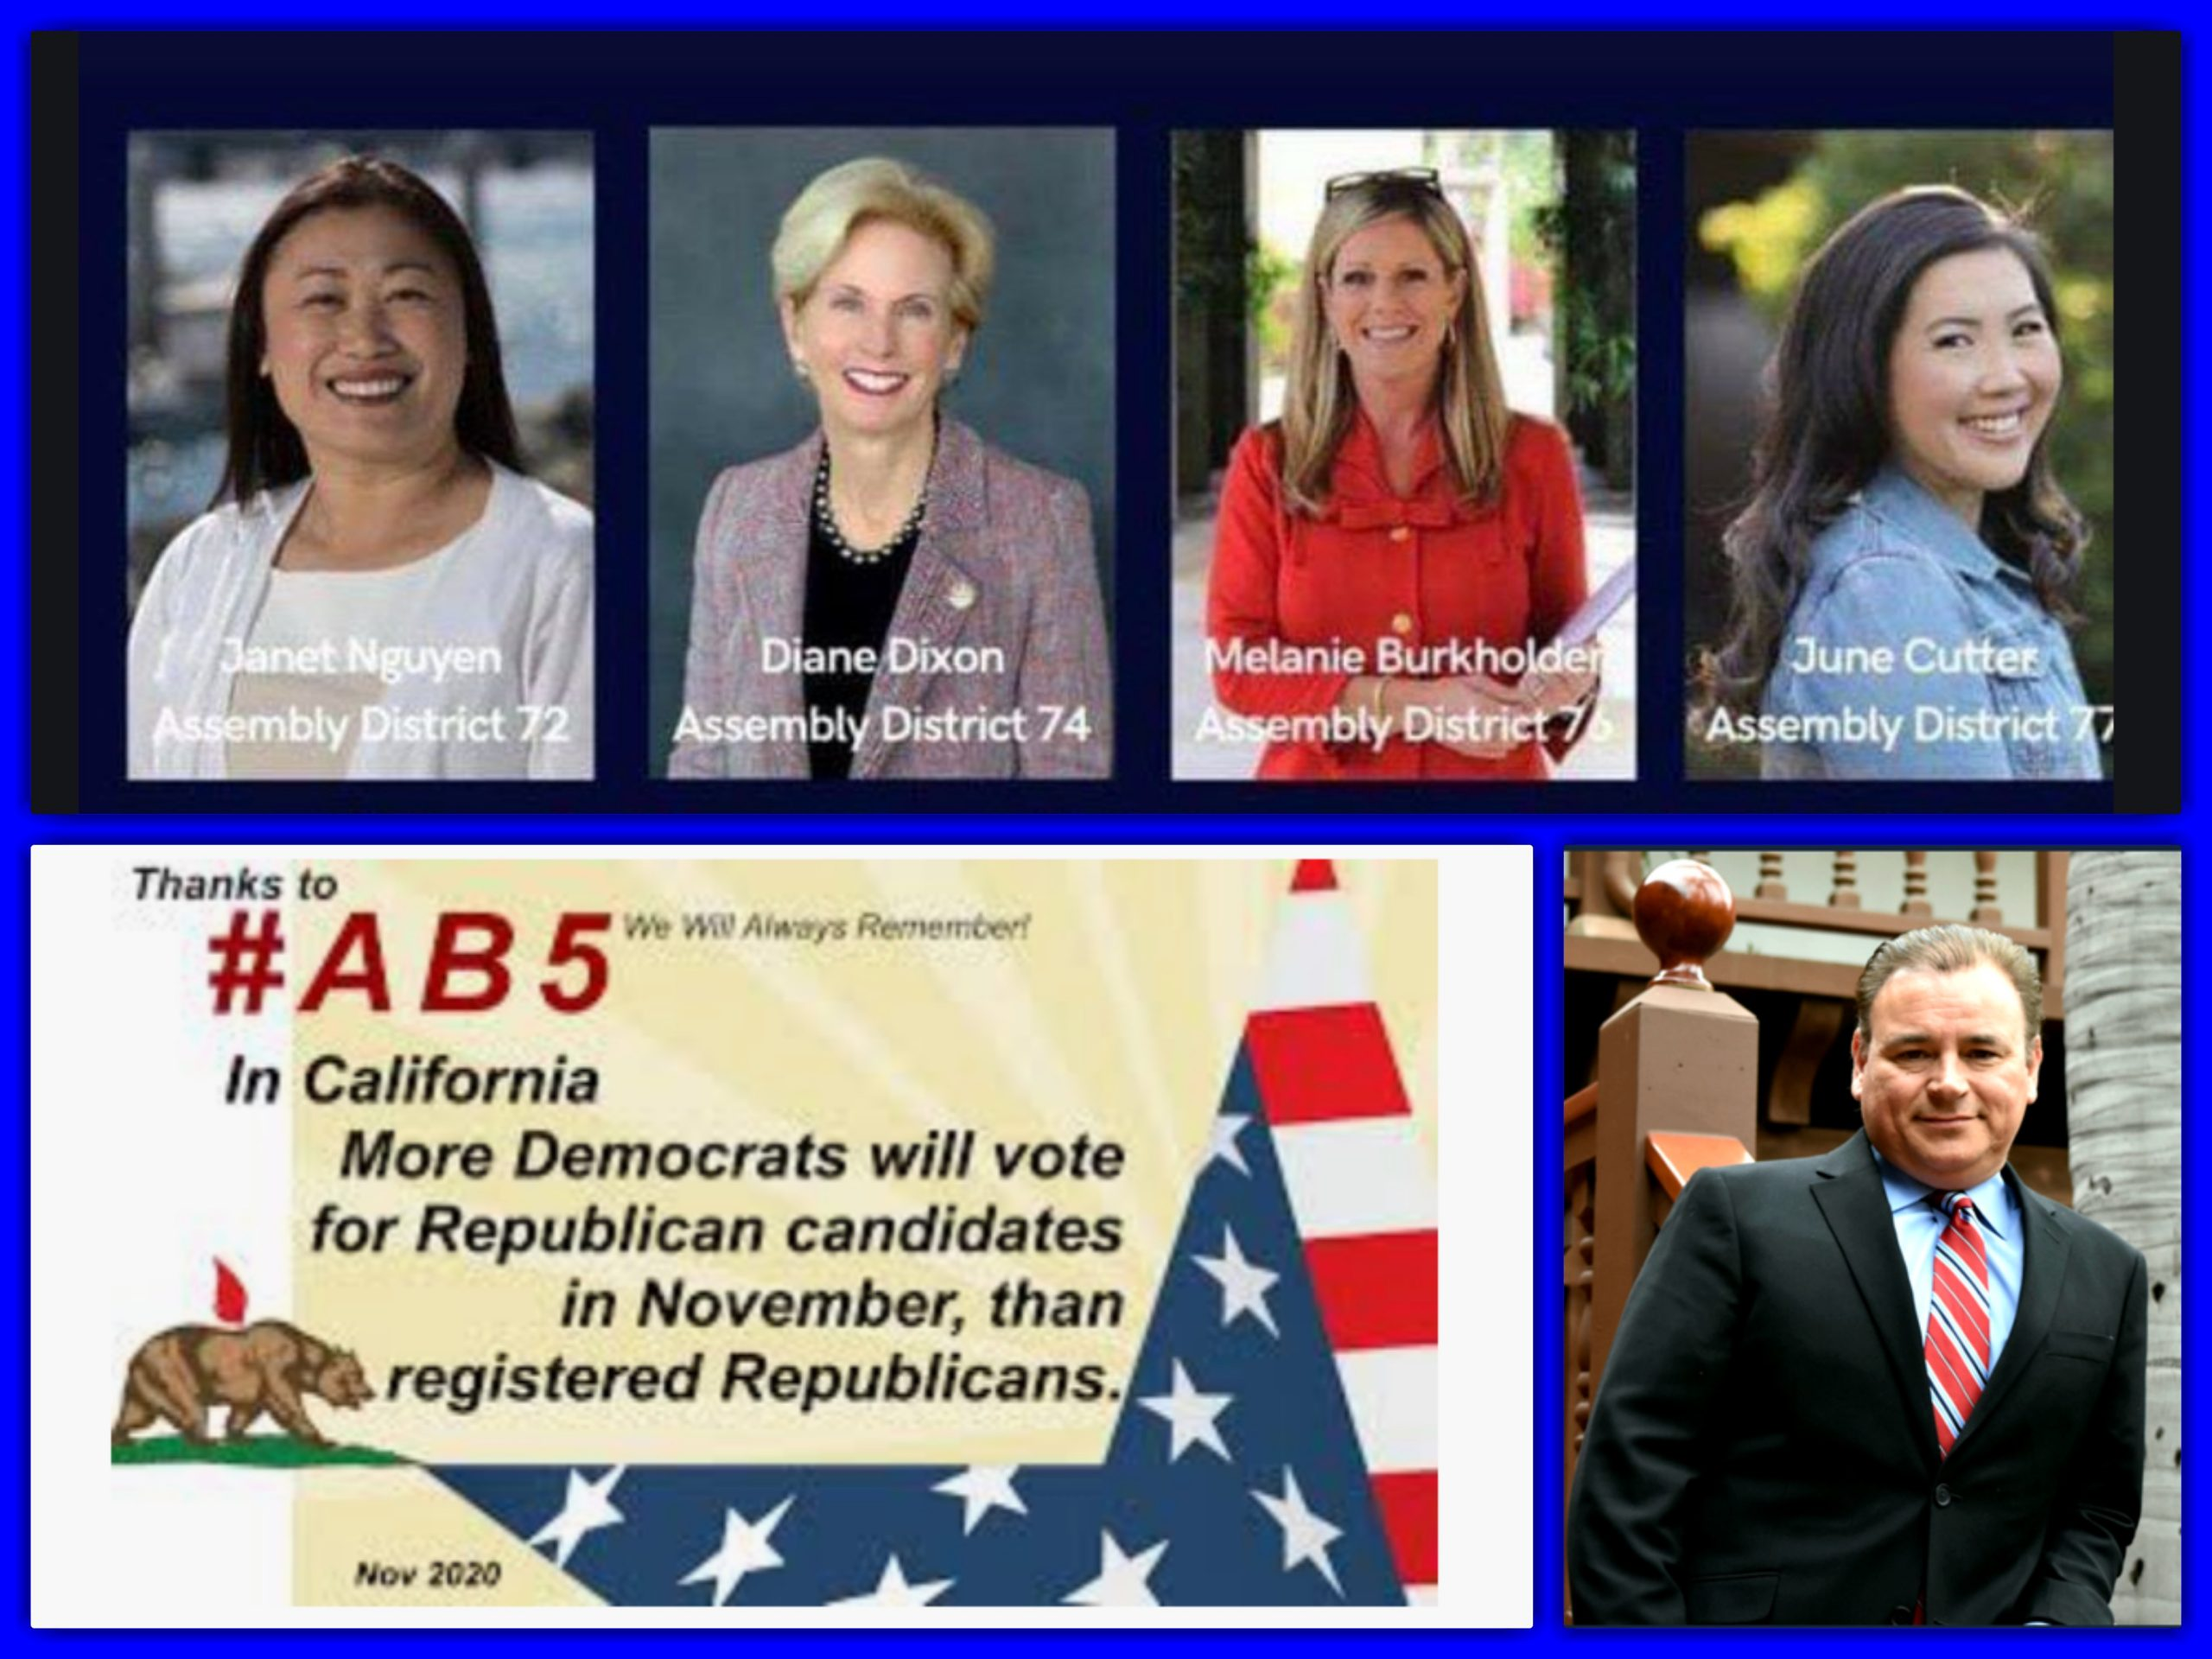 AB 5, Lorena Gonzalez, Democrats, Joe Biden, Kamala Harris, Stop AB 5, Repeal AB 5, Defeat Lorena Gonzalez, Yes on Prop 22, Yes 22, UBER, LYFT